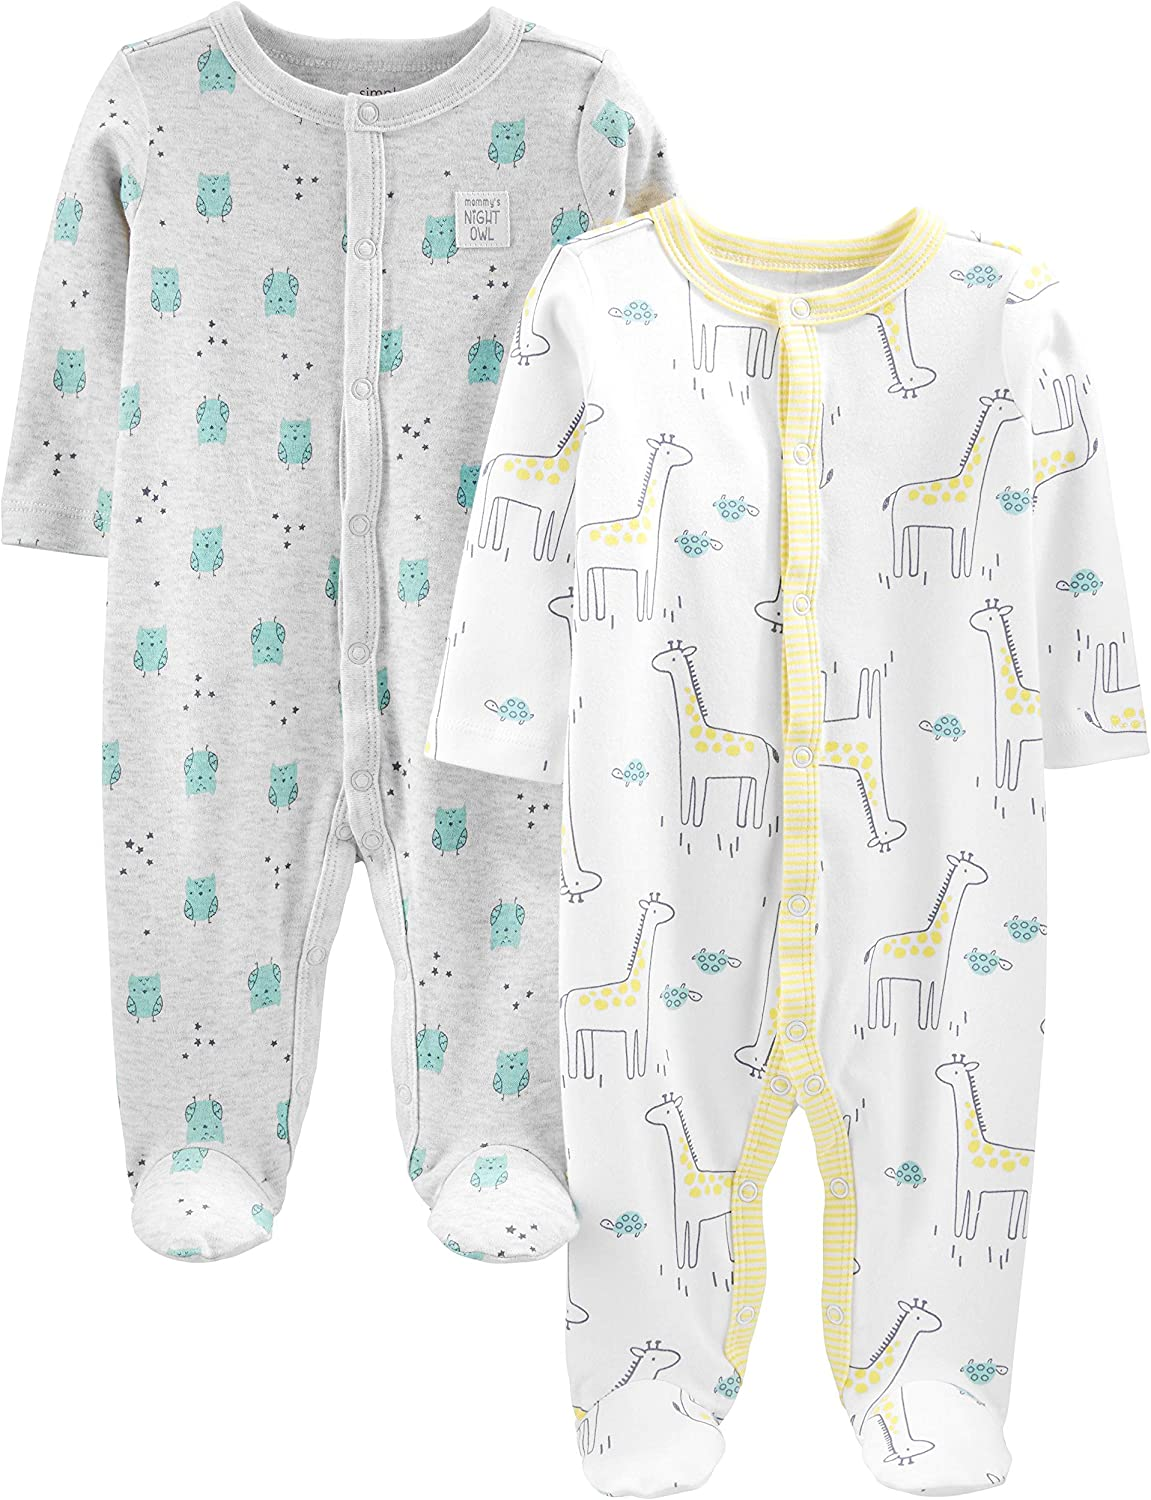 Simple Joys by Carters Baby 2-Pack Cotton Footed Sleep and Play